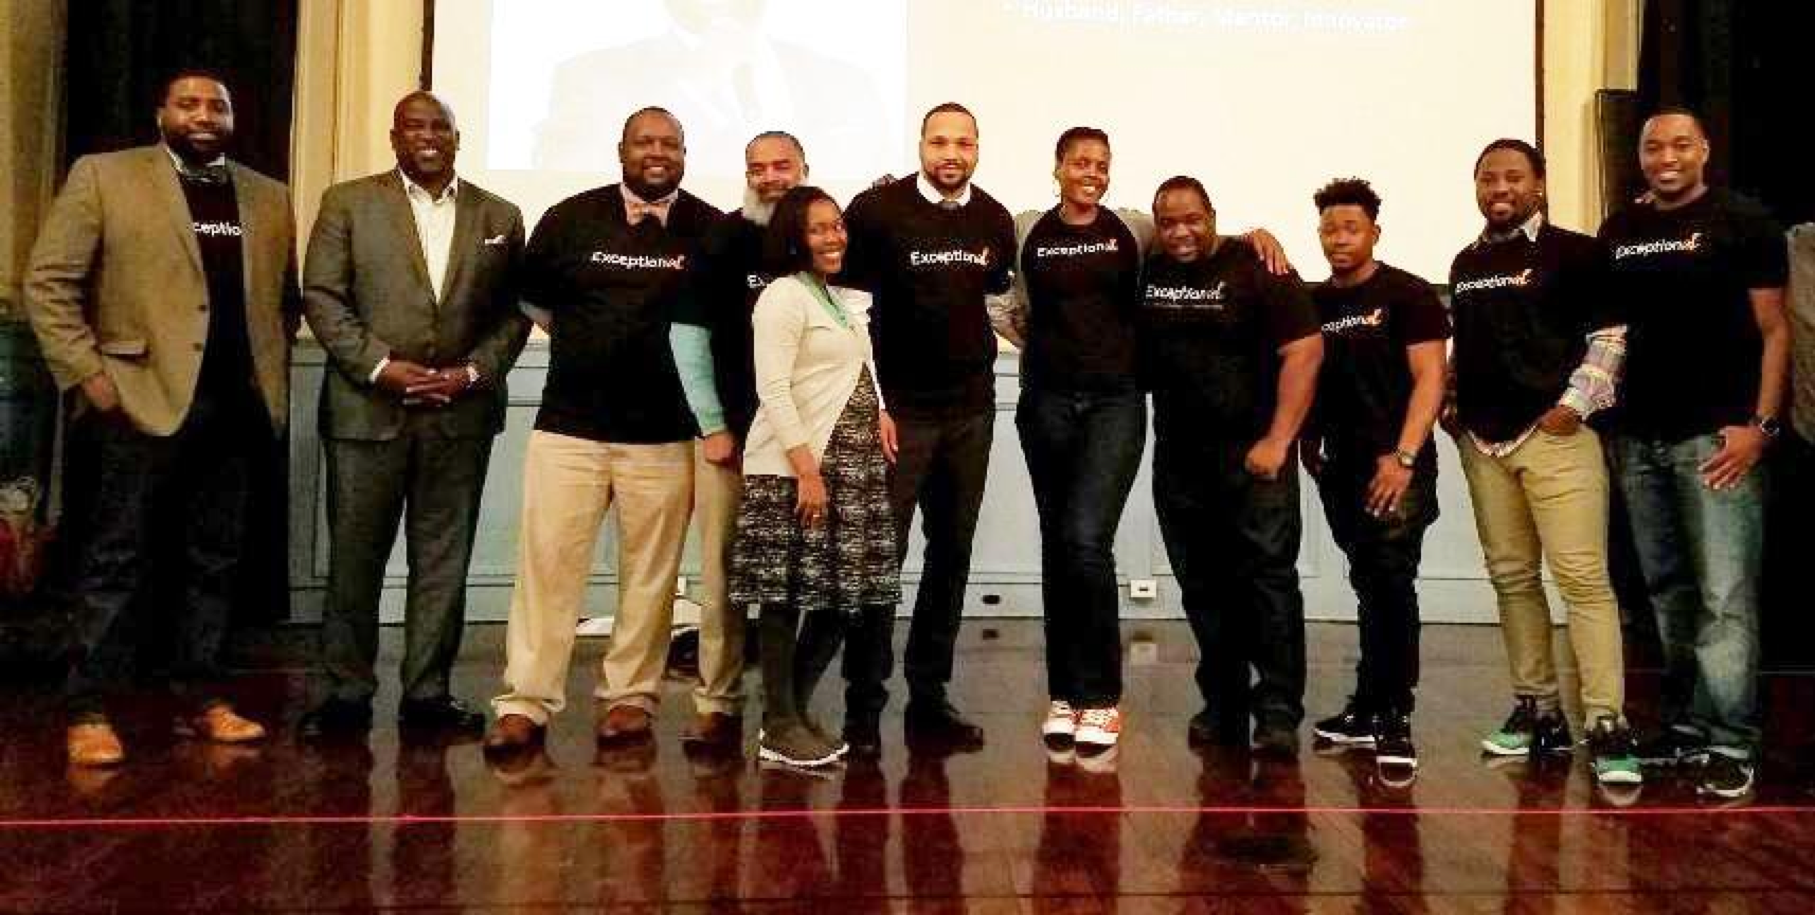 Men of The ExceptionAL Project after a Community Conversation in Newark, NJ